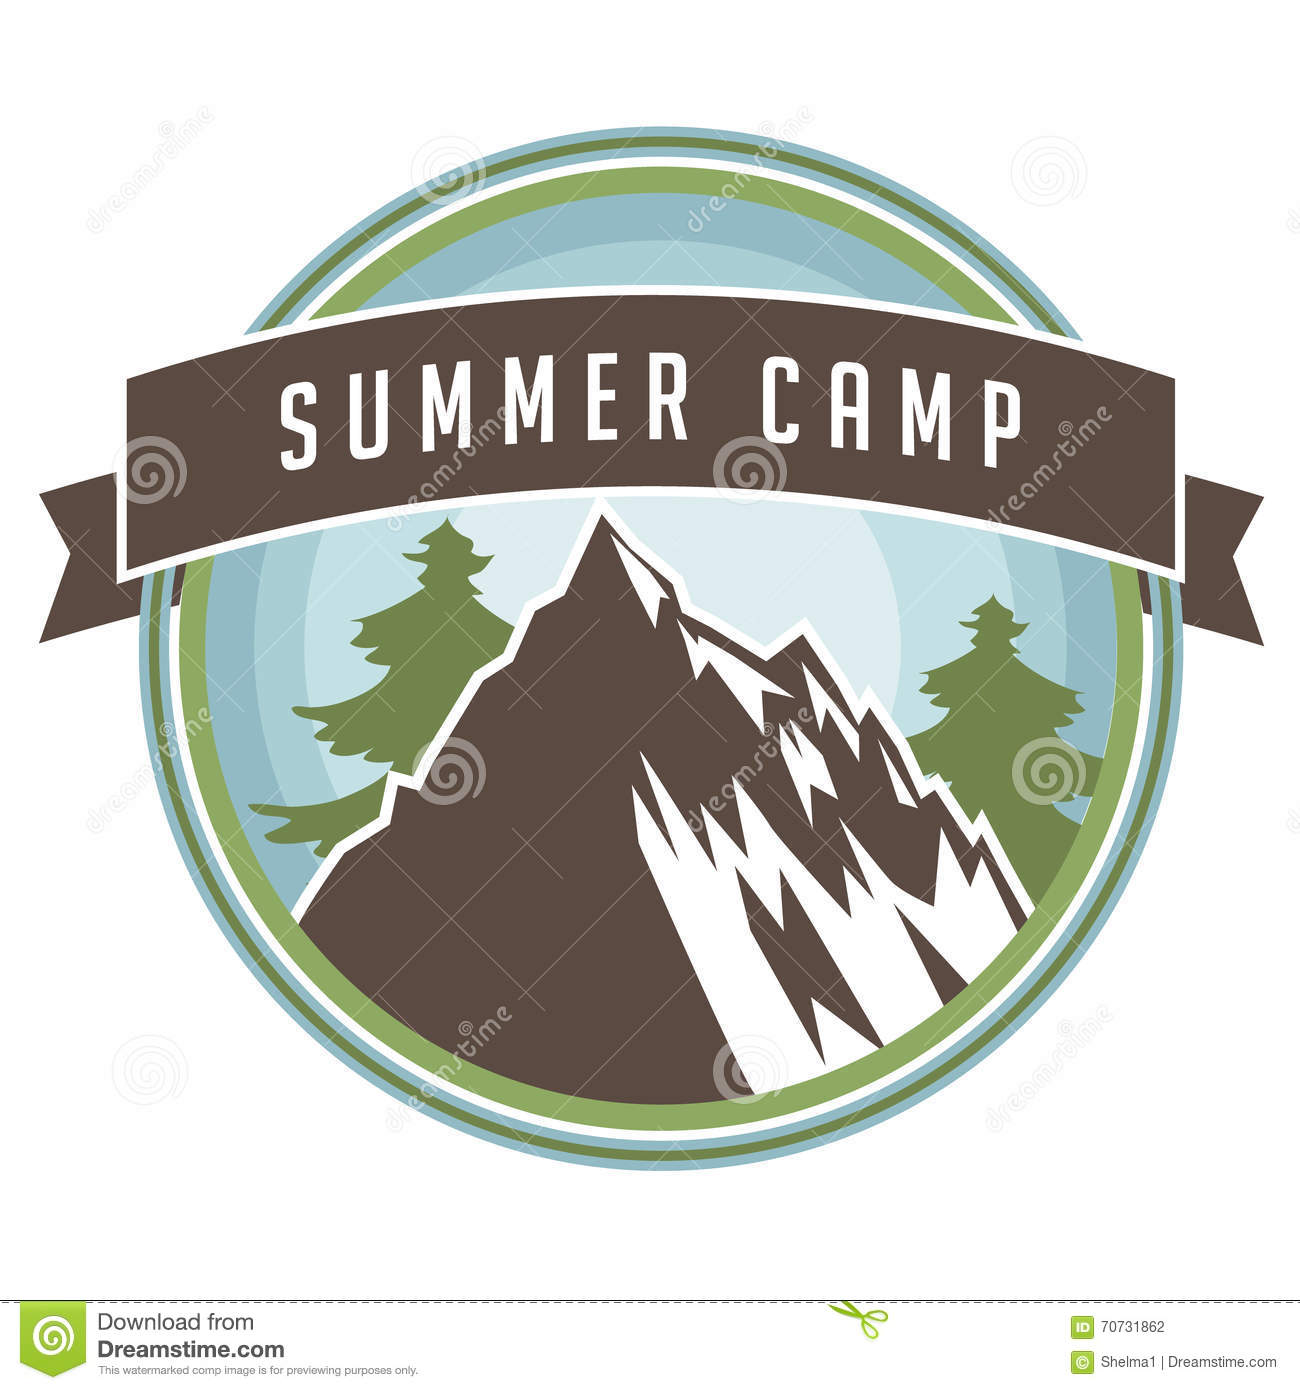 Poster design eps - Vintage Summer Camp Backpacking And Hiking Poster Design Stock Photography